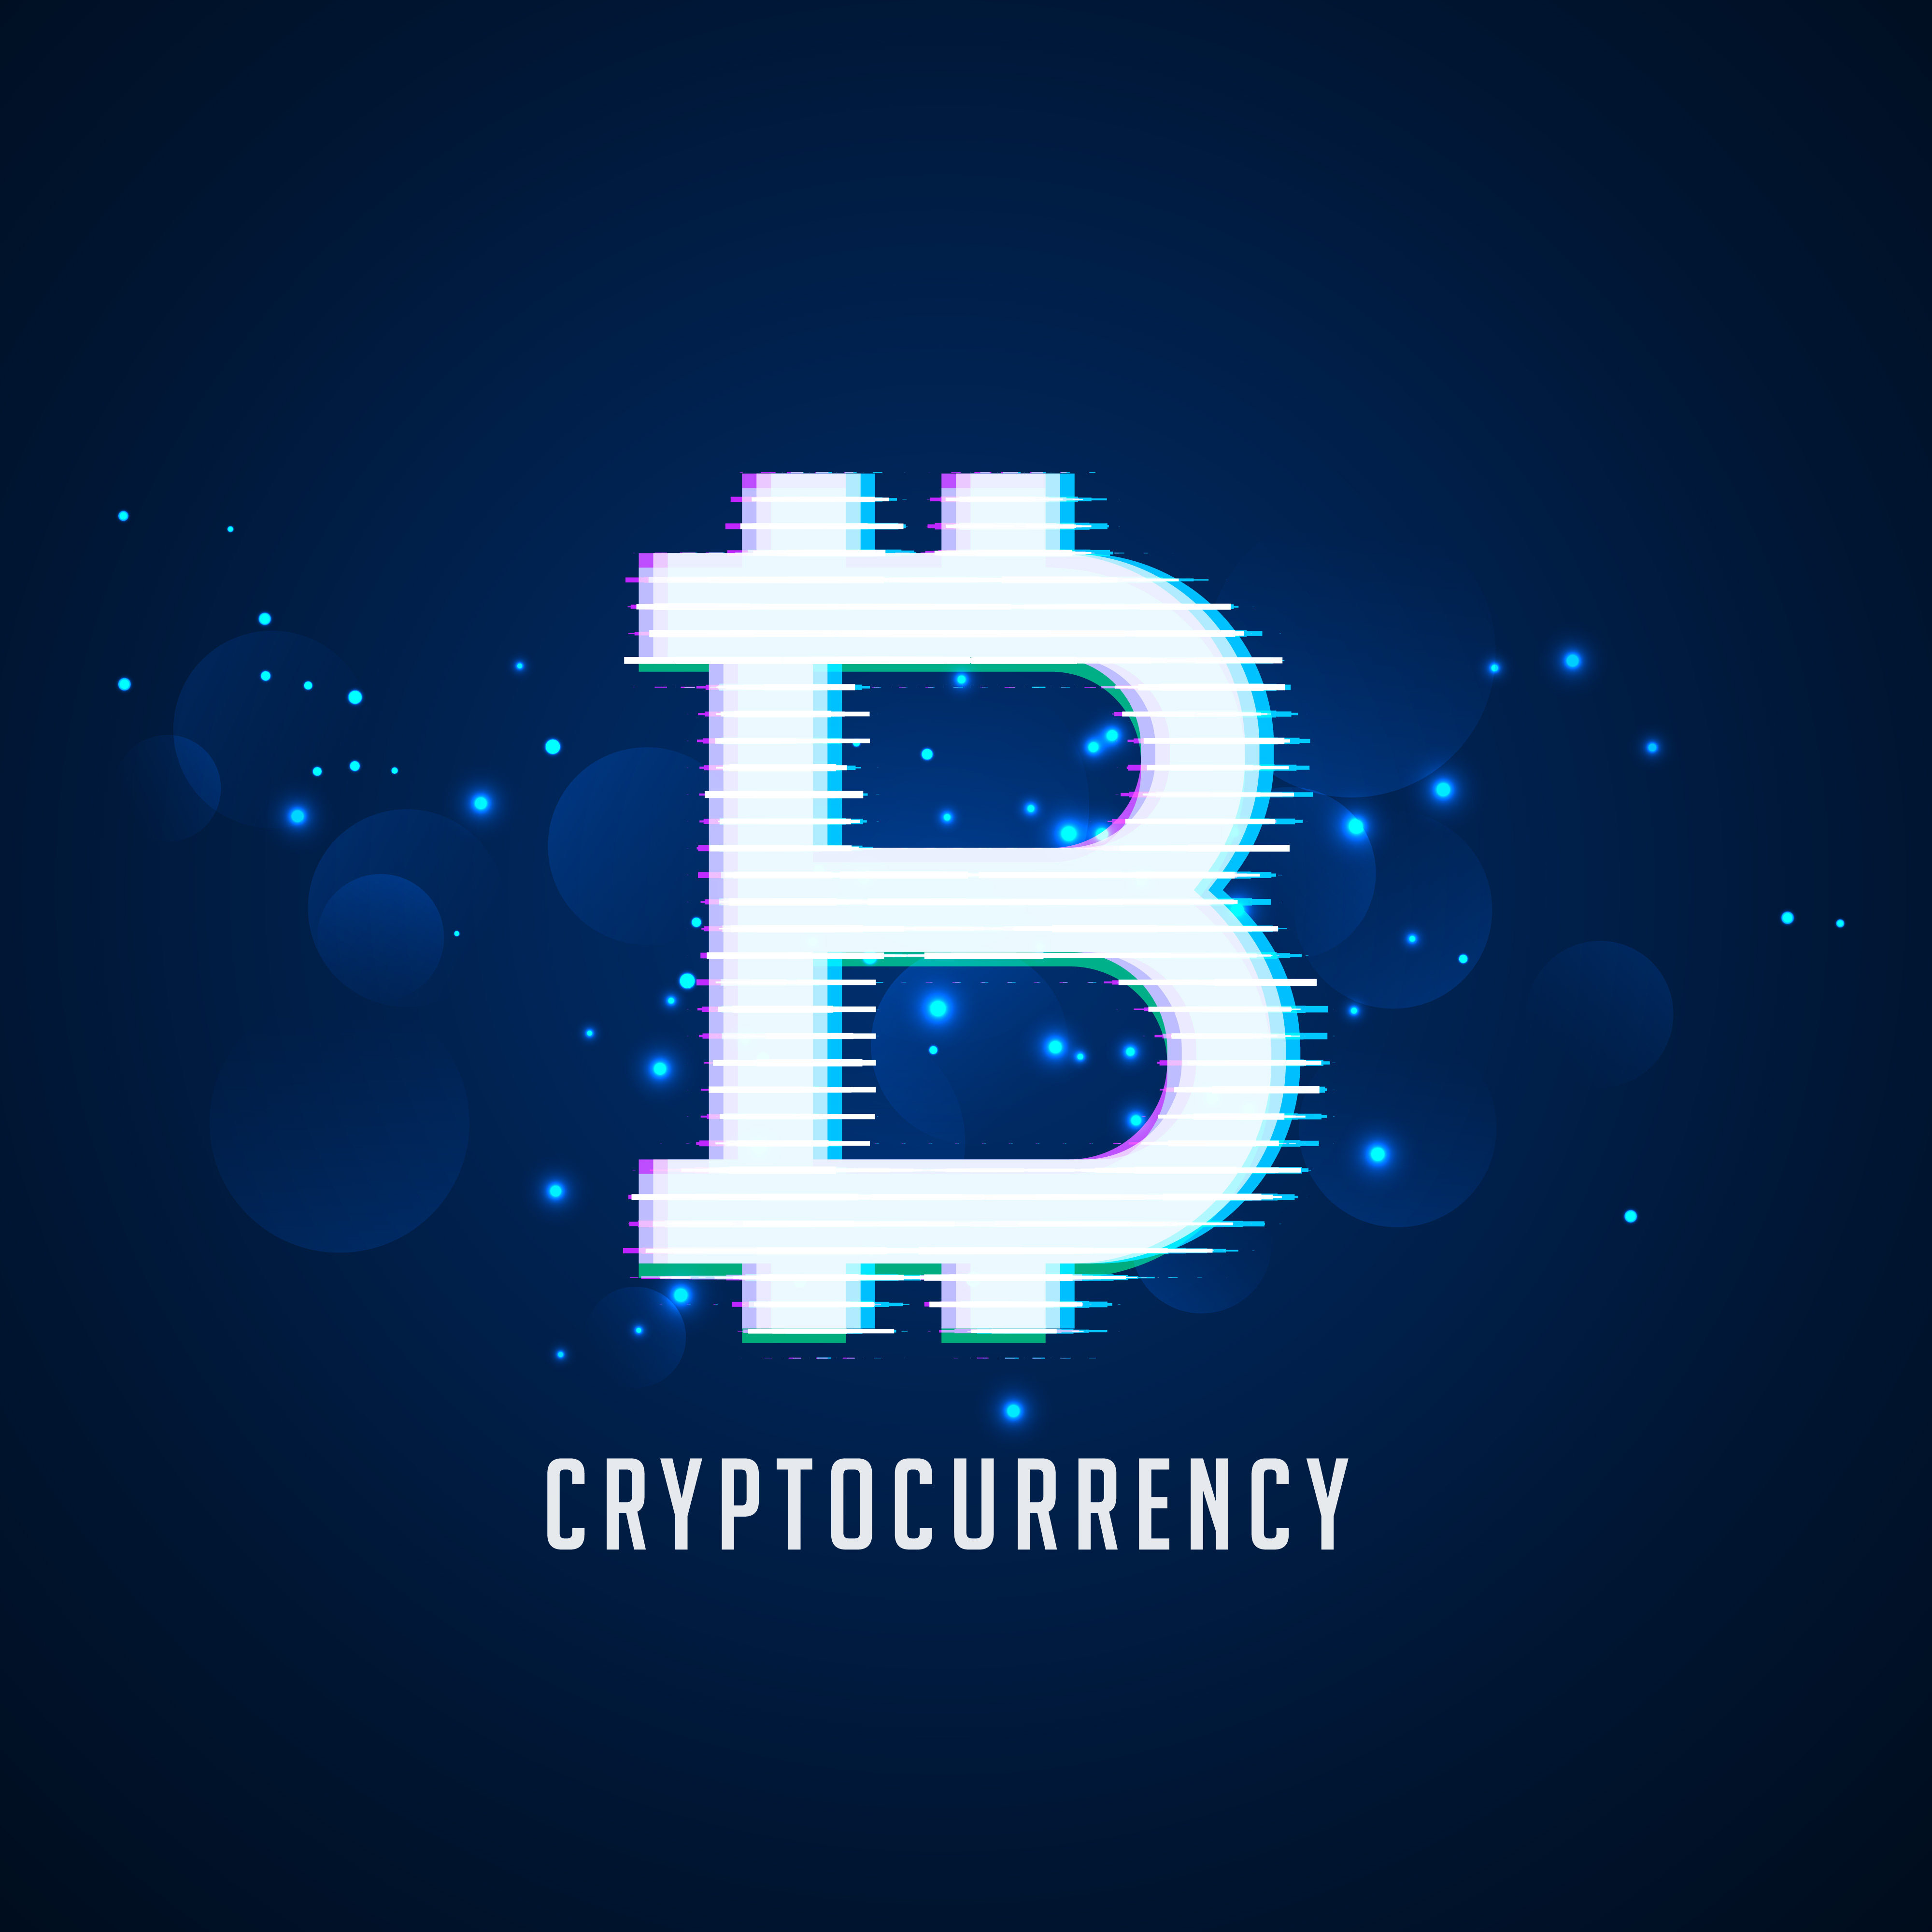 English what business sector is cryptocurrency